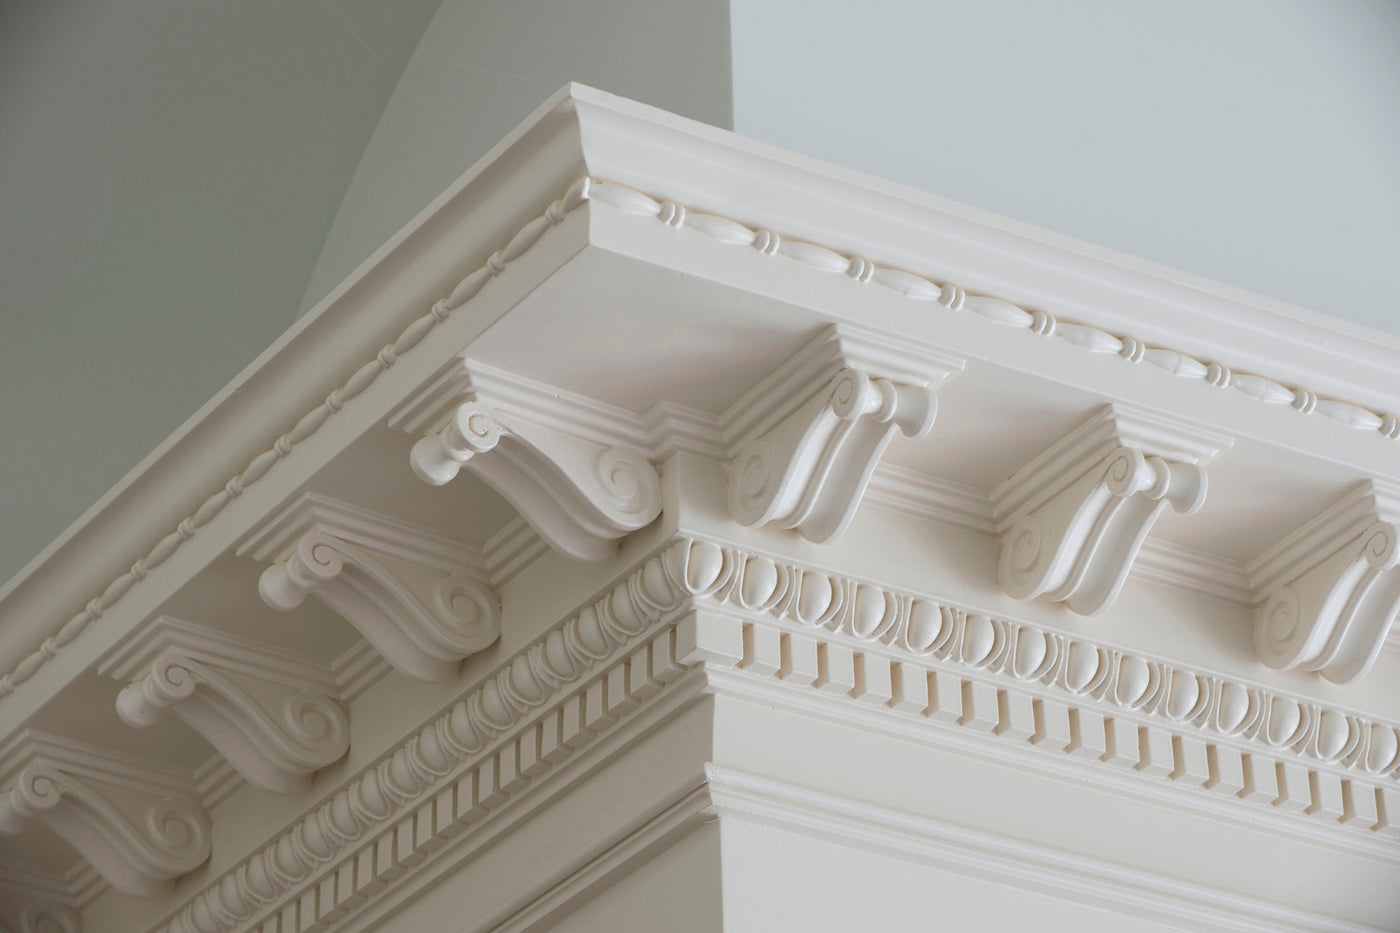 Quality architectural mouldings offered in wood, plaster and resin